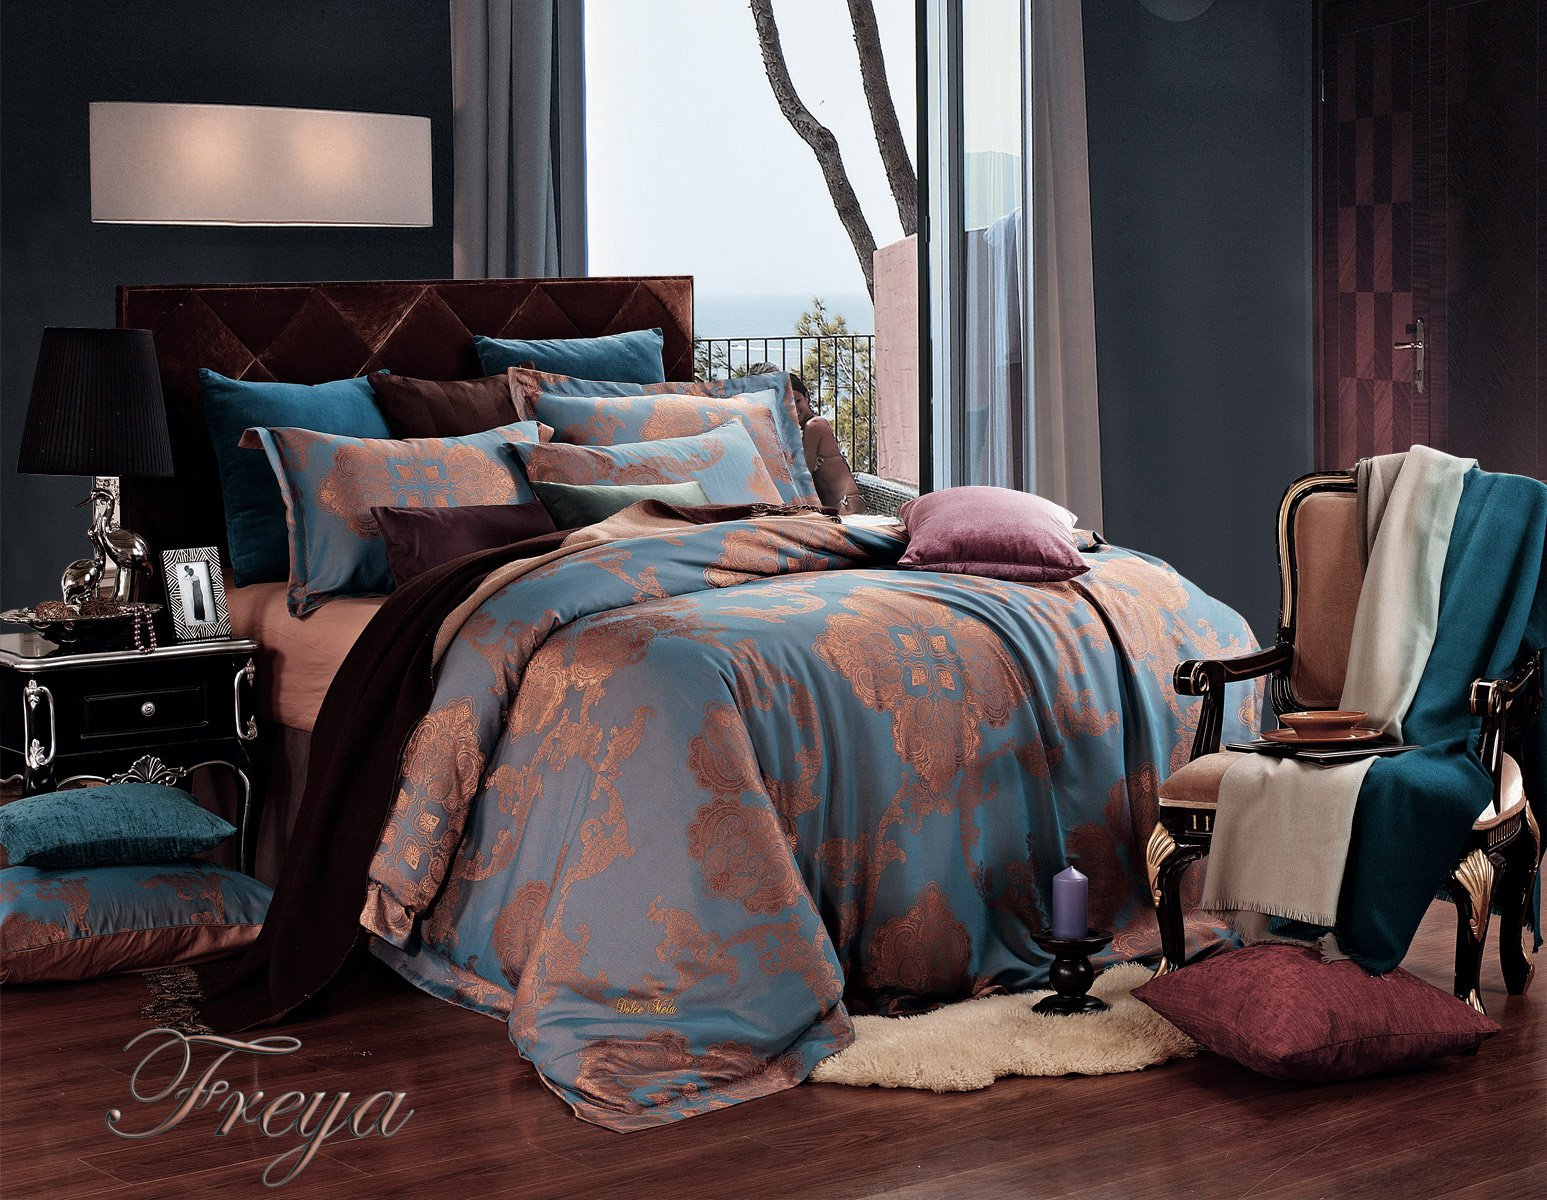 Freya By Dolce Mela 6 Pc King Size Duvet Cover Set Luxury